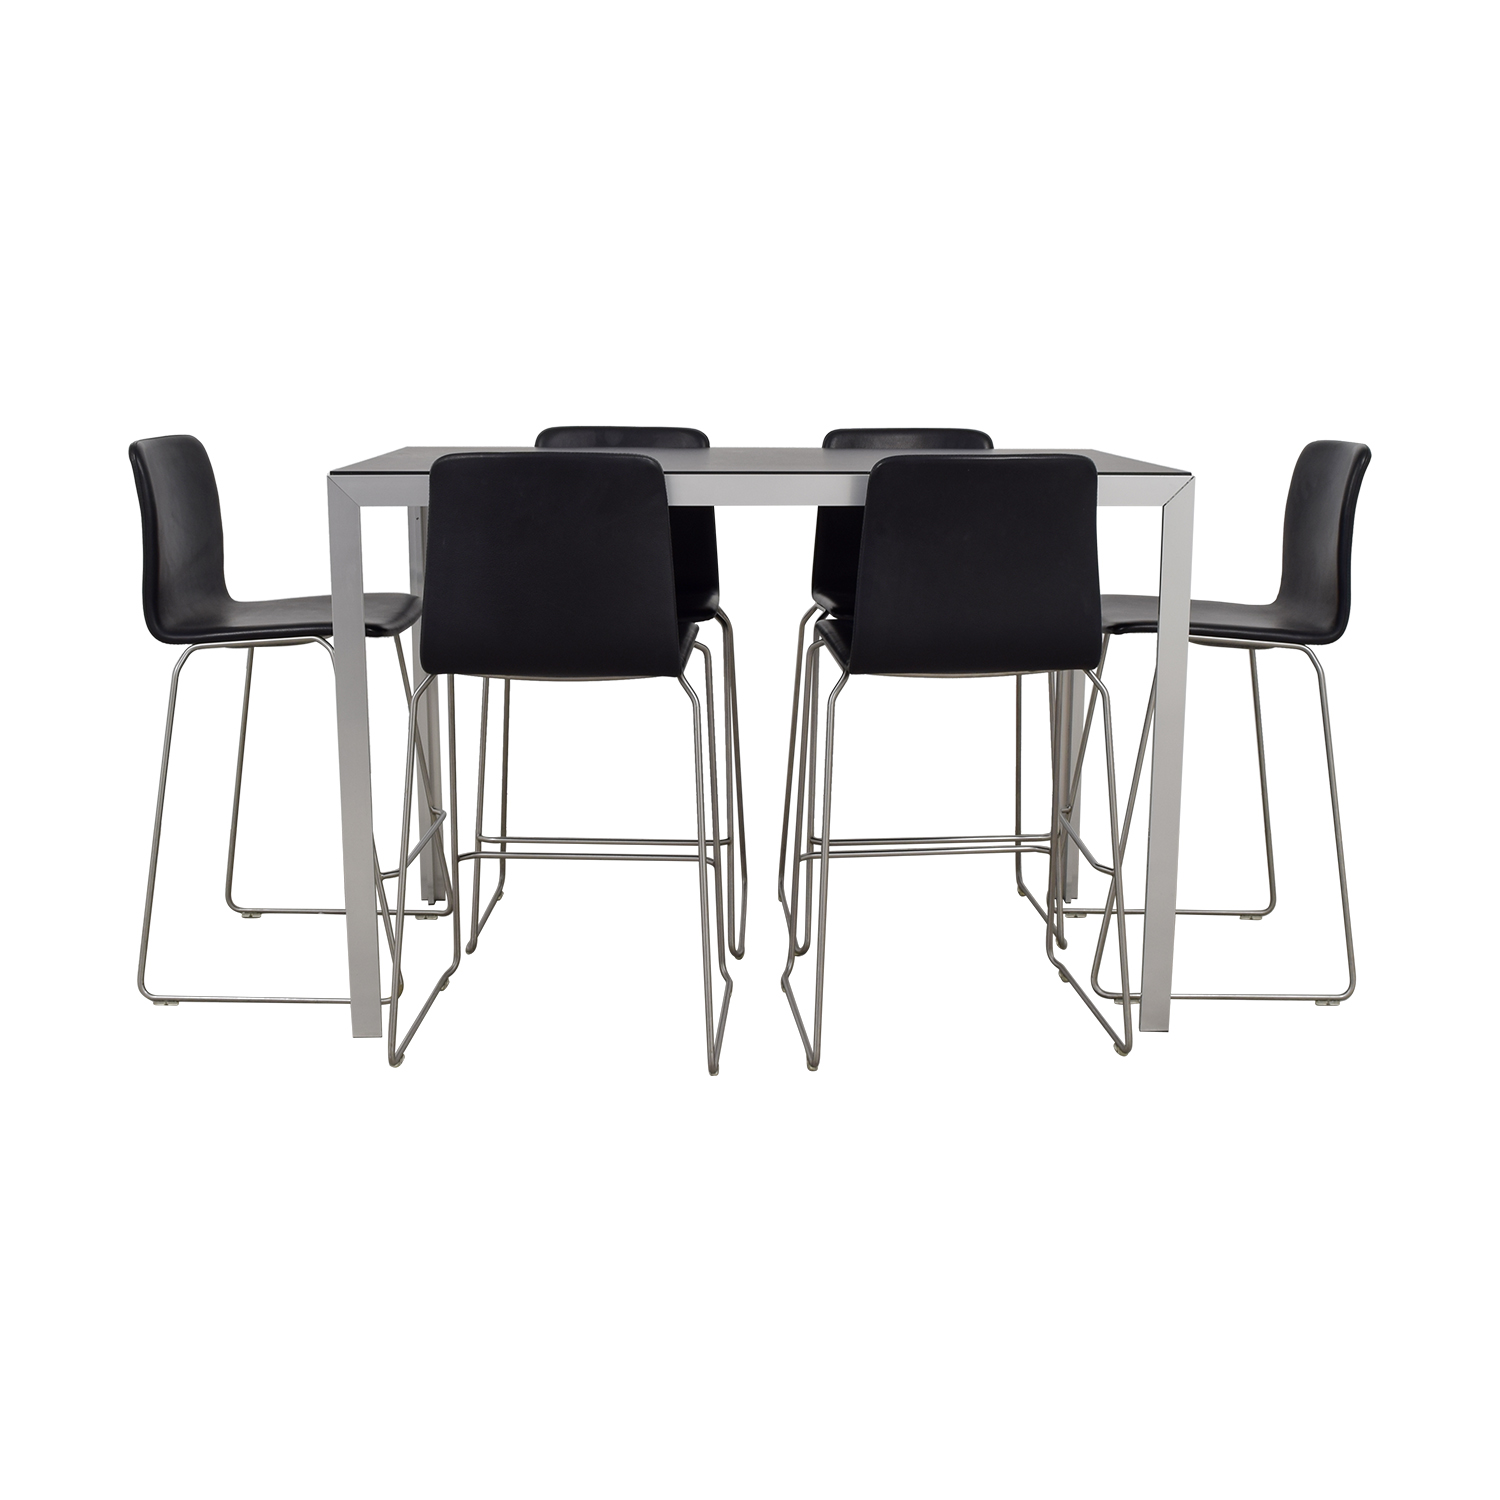 Charming Shop HAY Black And Chrome High Table And Bar Stools HAY ...